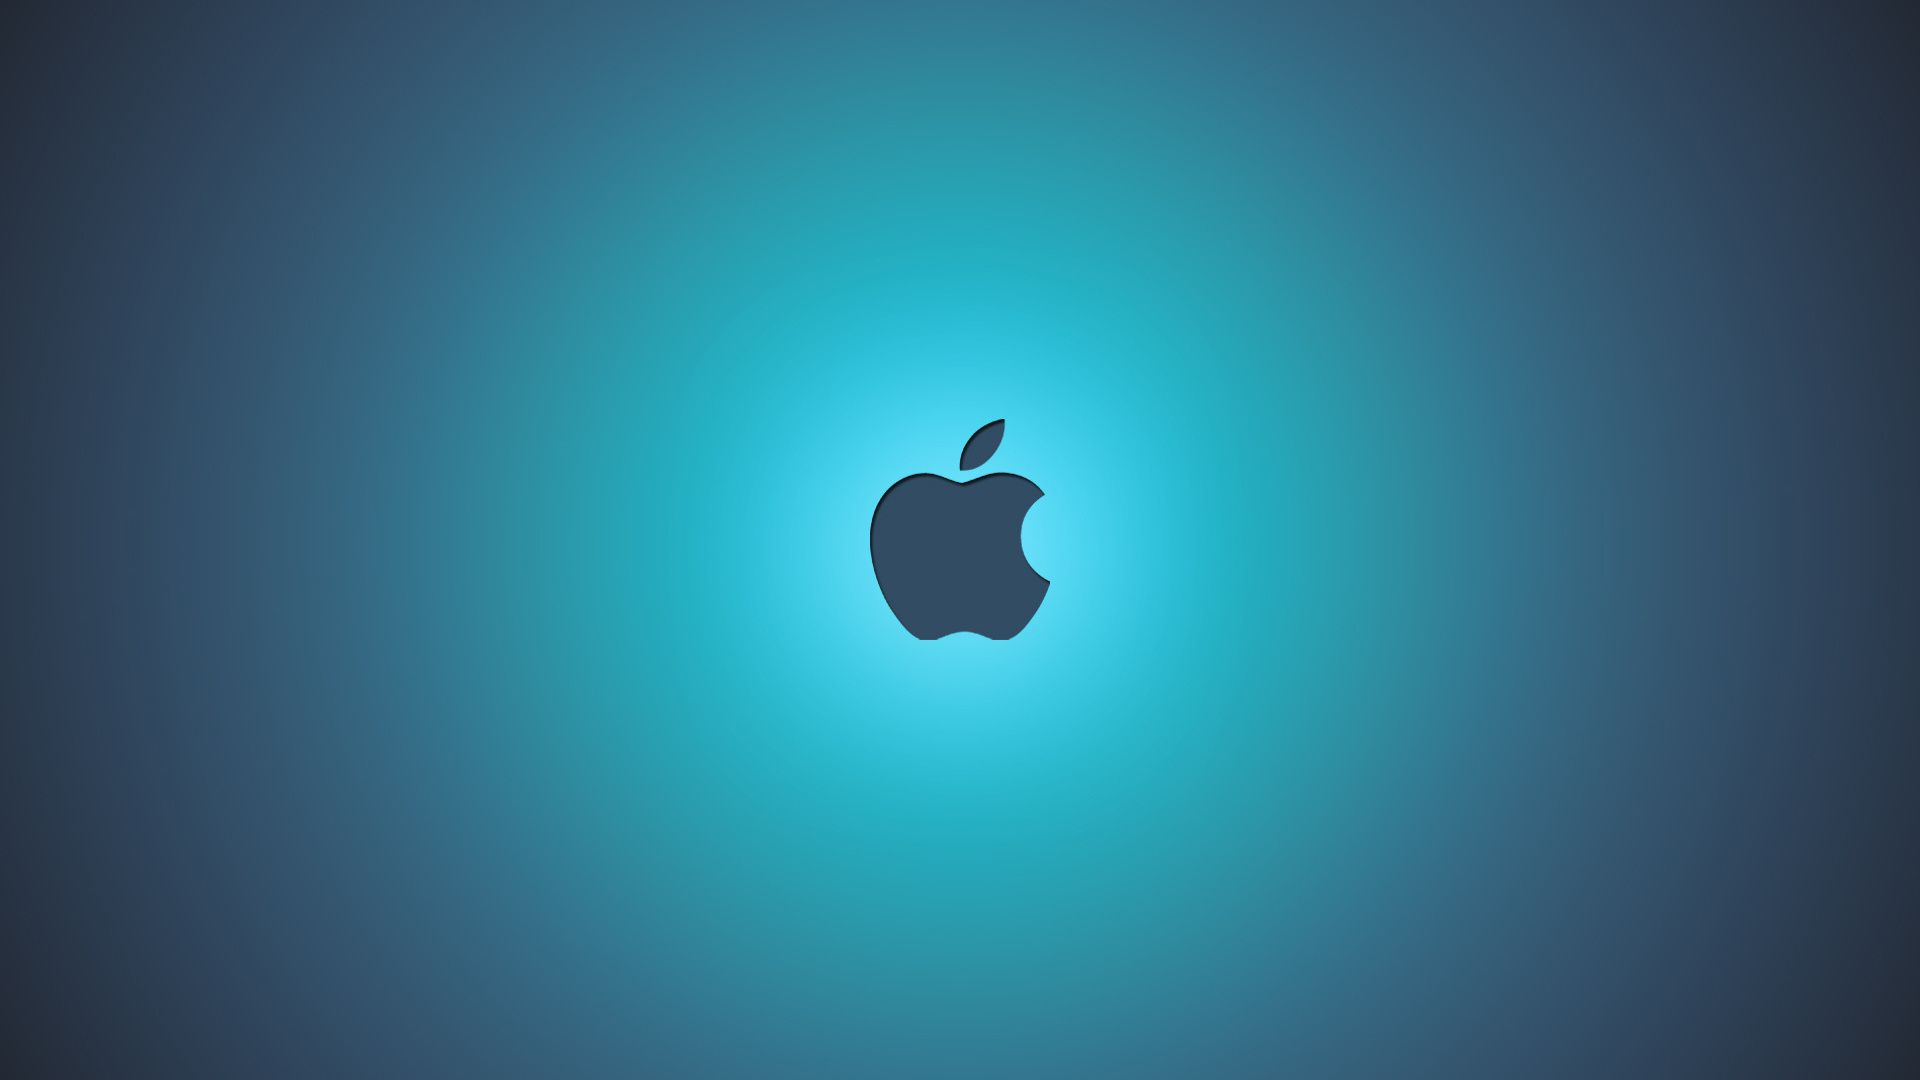 Apple Blue Background Wallpaper Desktop 6250 Wallpaper High Apple Wallpaper Computer Wallpaper Hd Apple Wallpaper Iphone